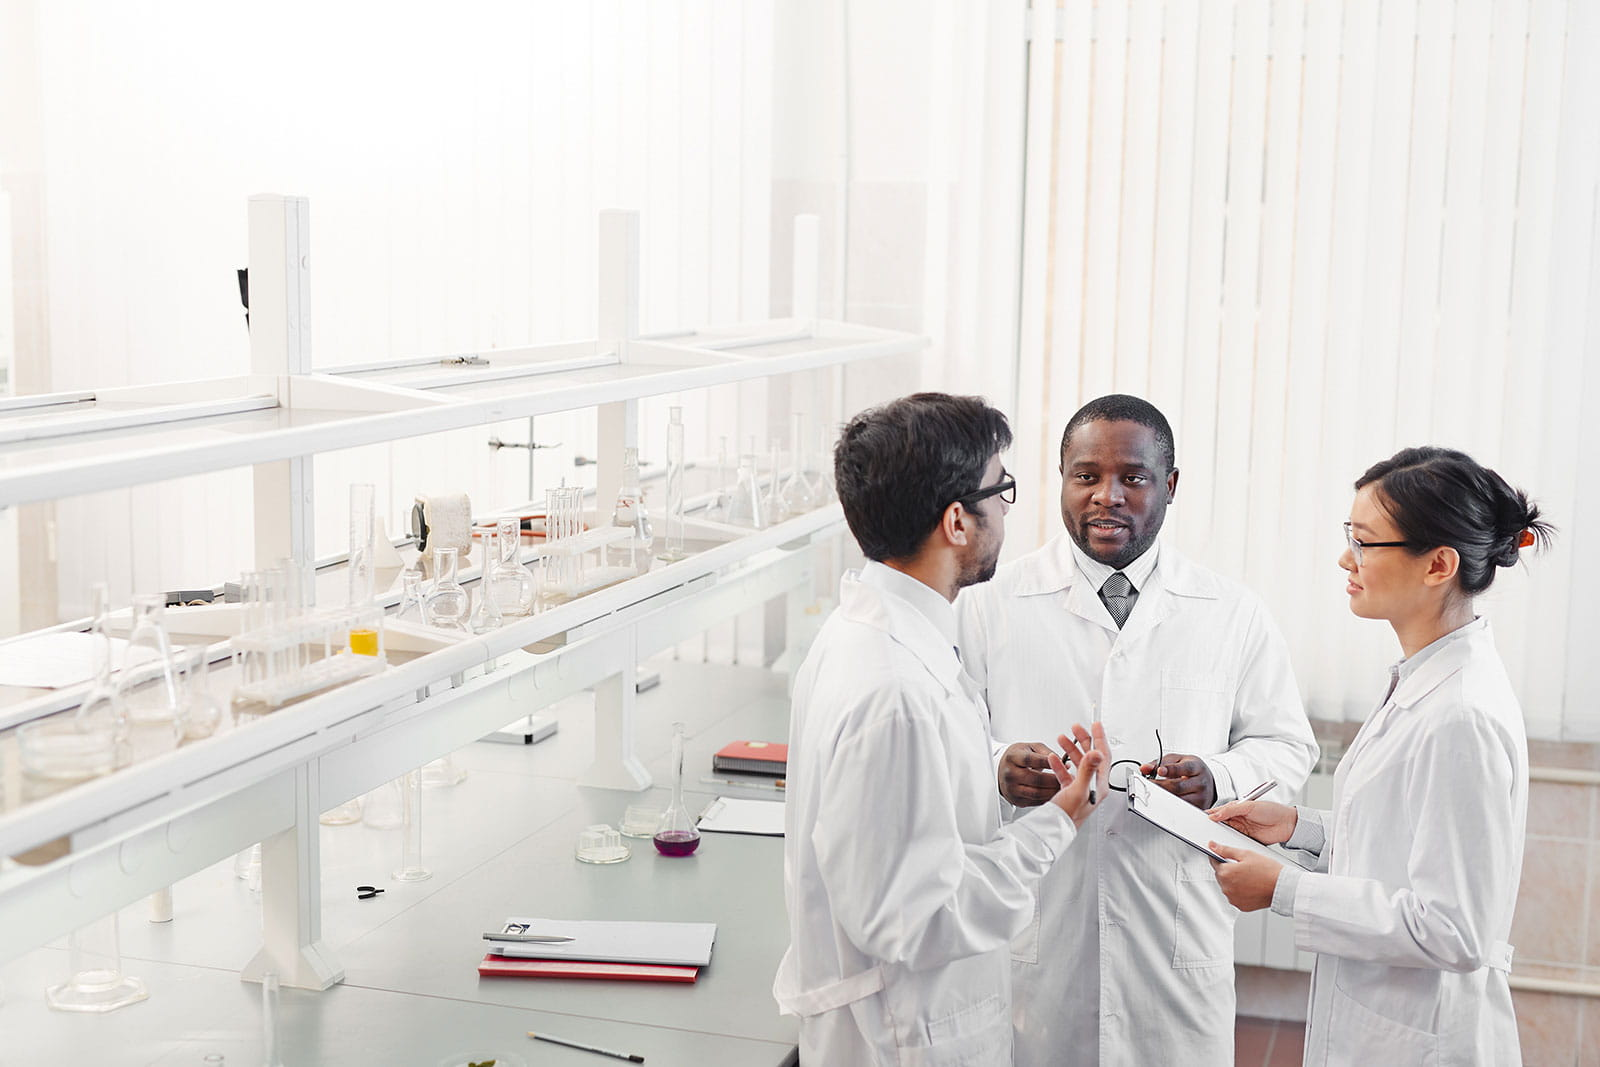 Group of researchers talking in a lab